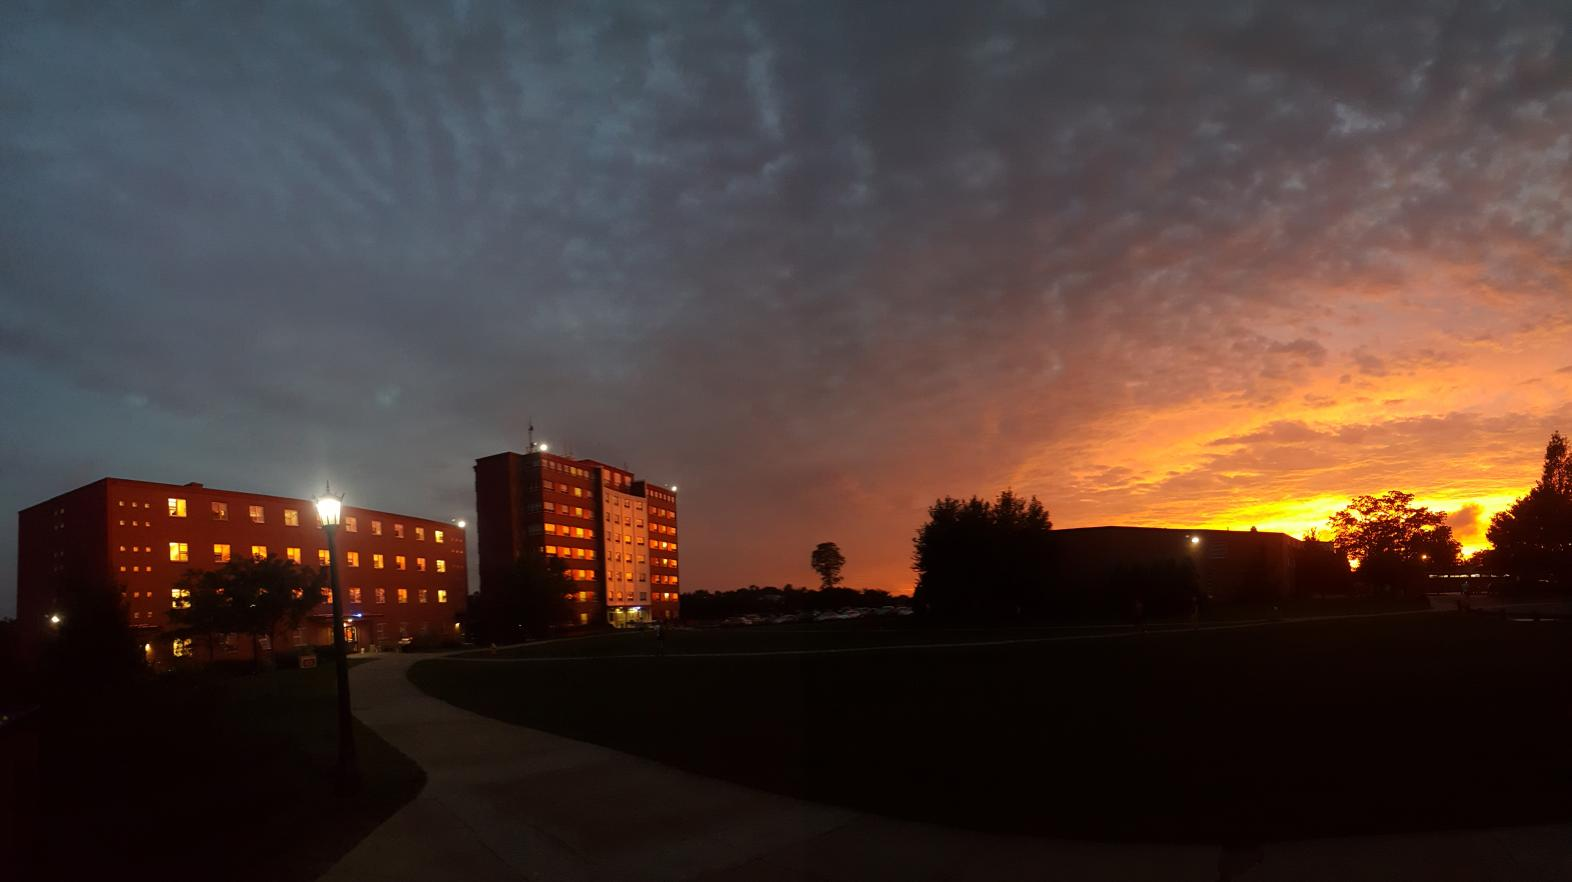 The sunsets near International Hall are unparalleled as shown in this photo by Springfield College student Bryttnie Thomas